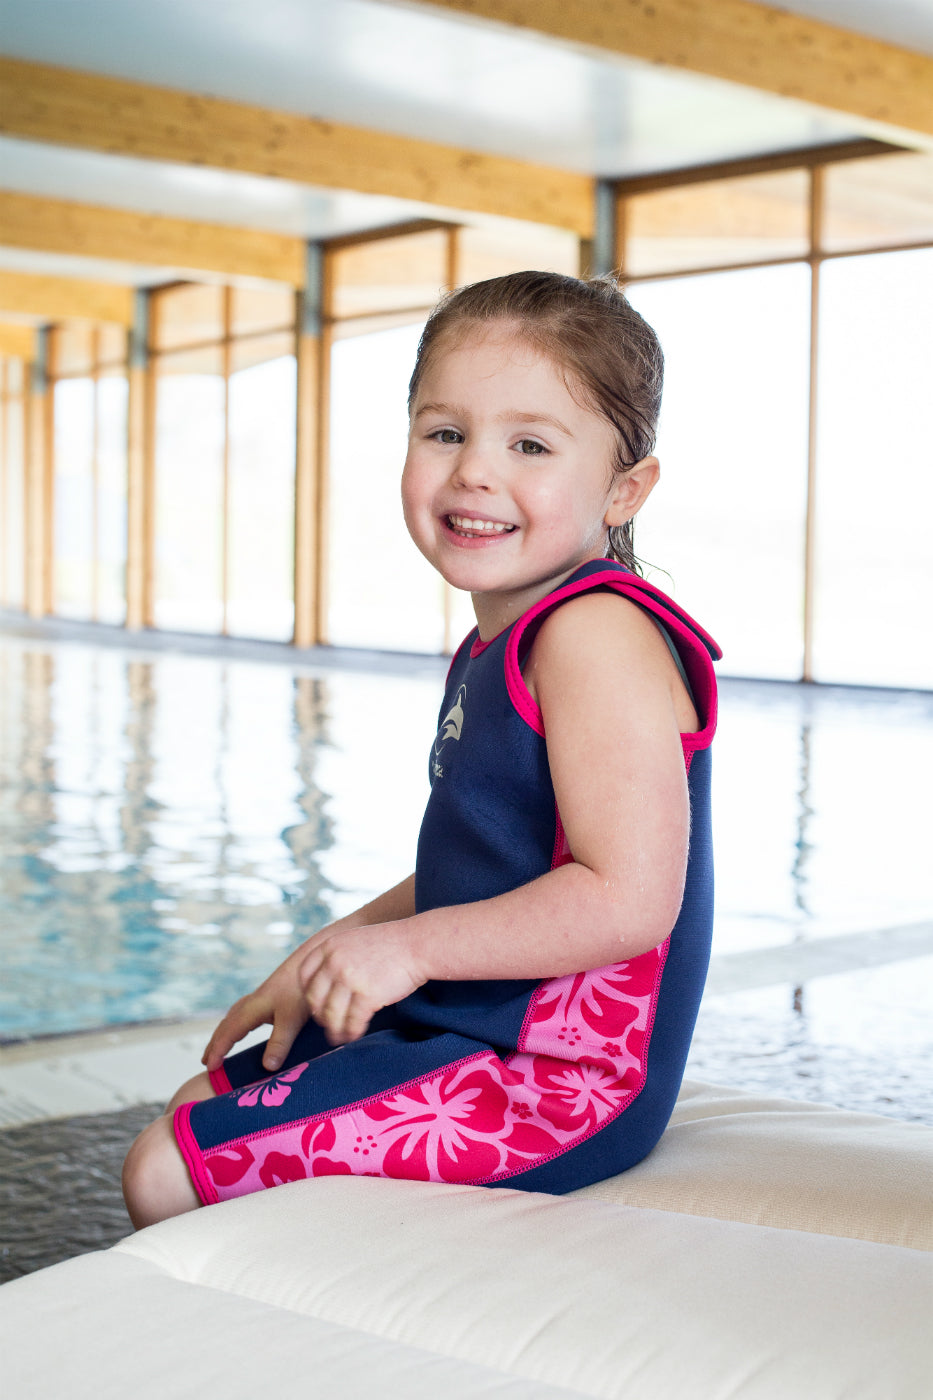 Kids Wetsuit for Swimming